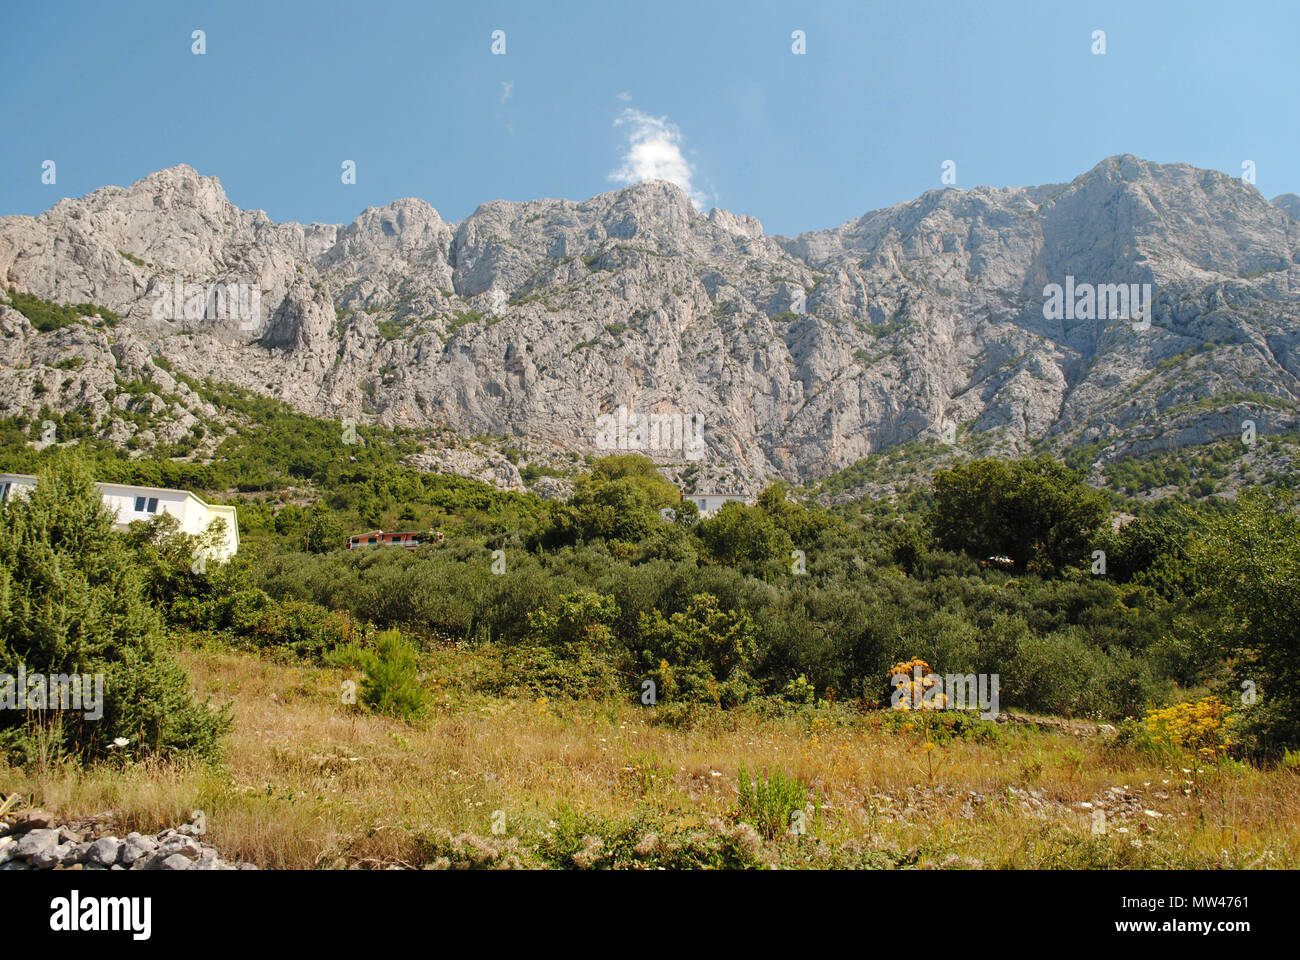 The Biokovo mountain range, the second largest of its kind in Croatia. Stock Photo